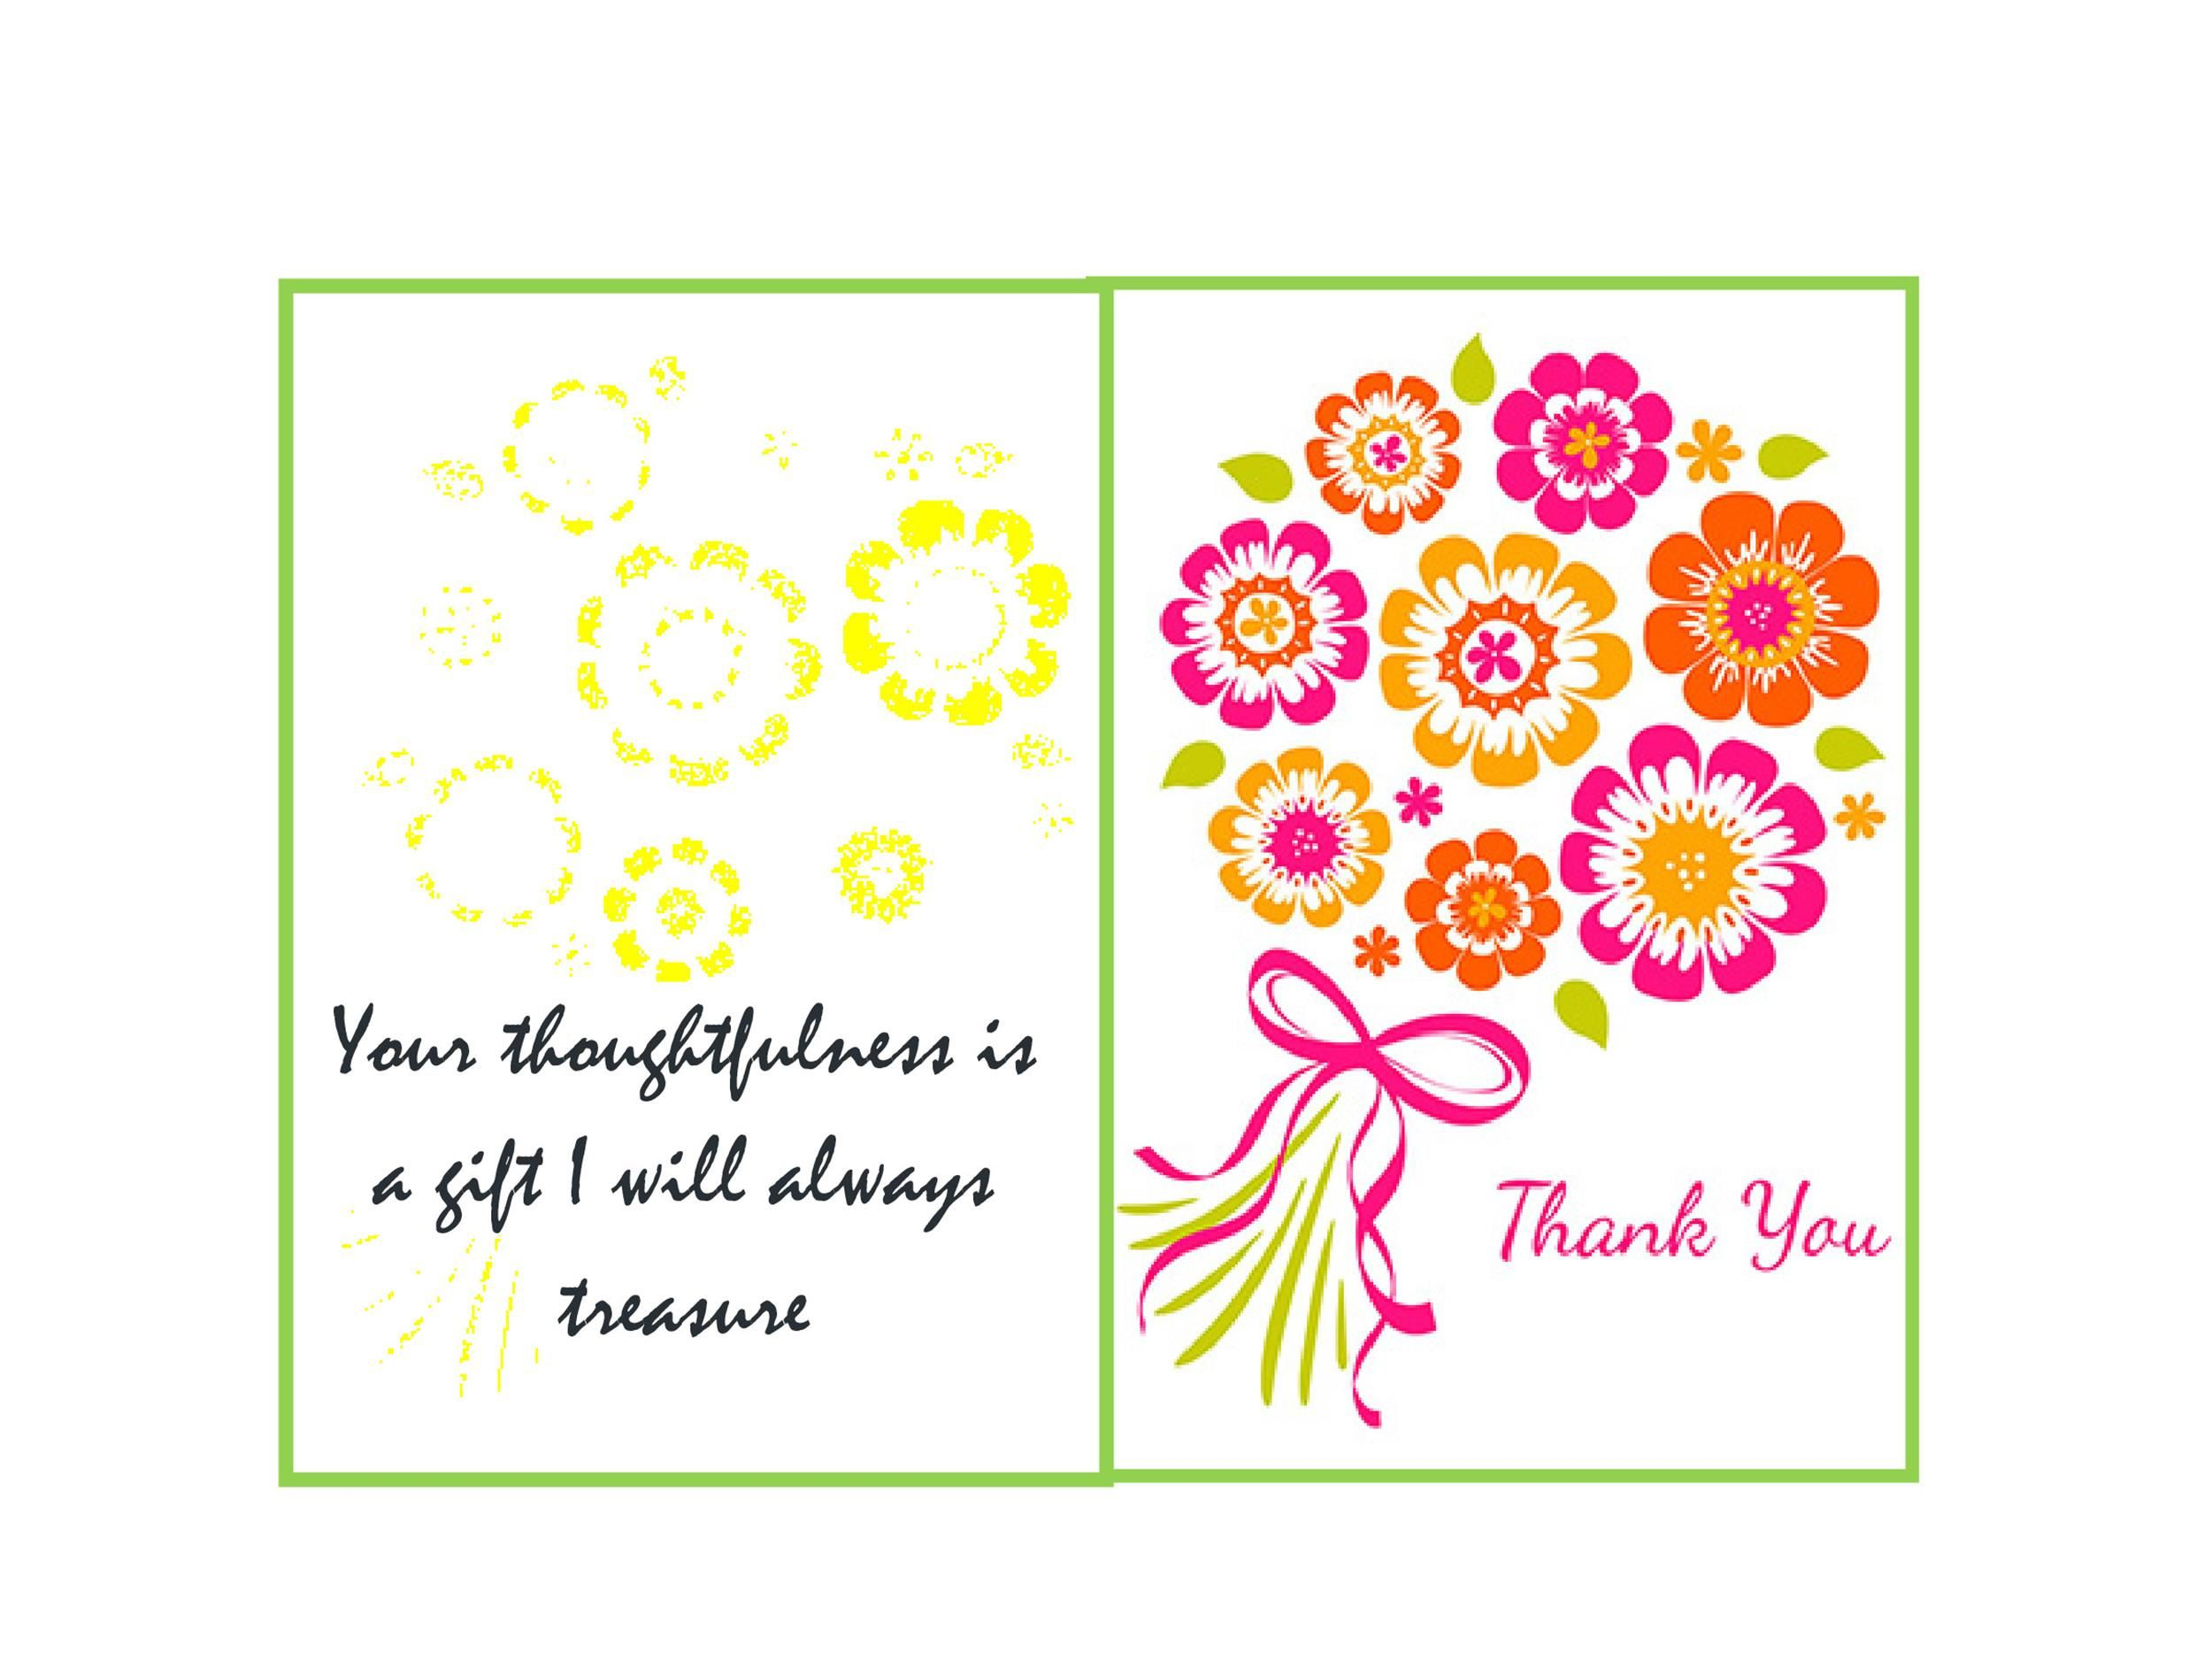 007 Marvelou Thank You Card Template Inspiration  Wedding Busines Word FreeFull